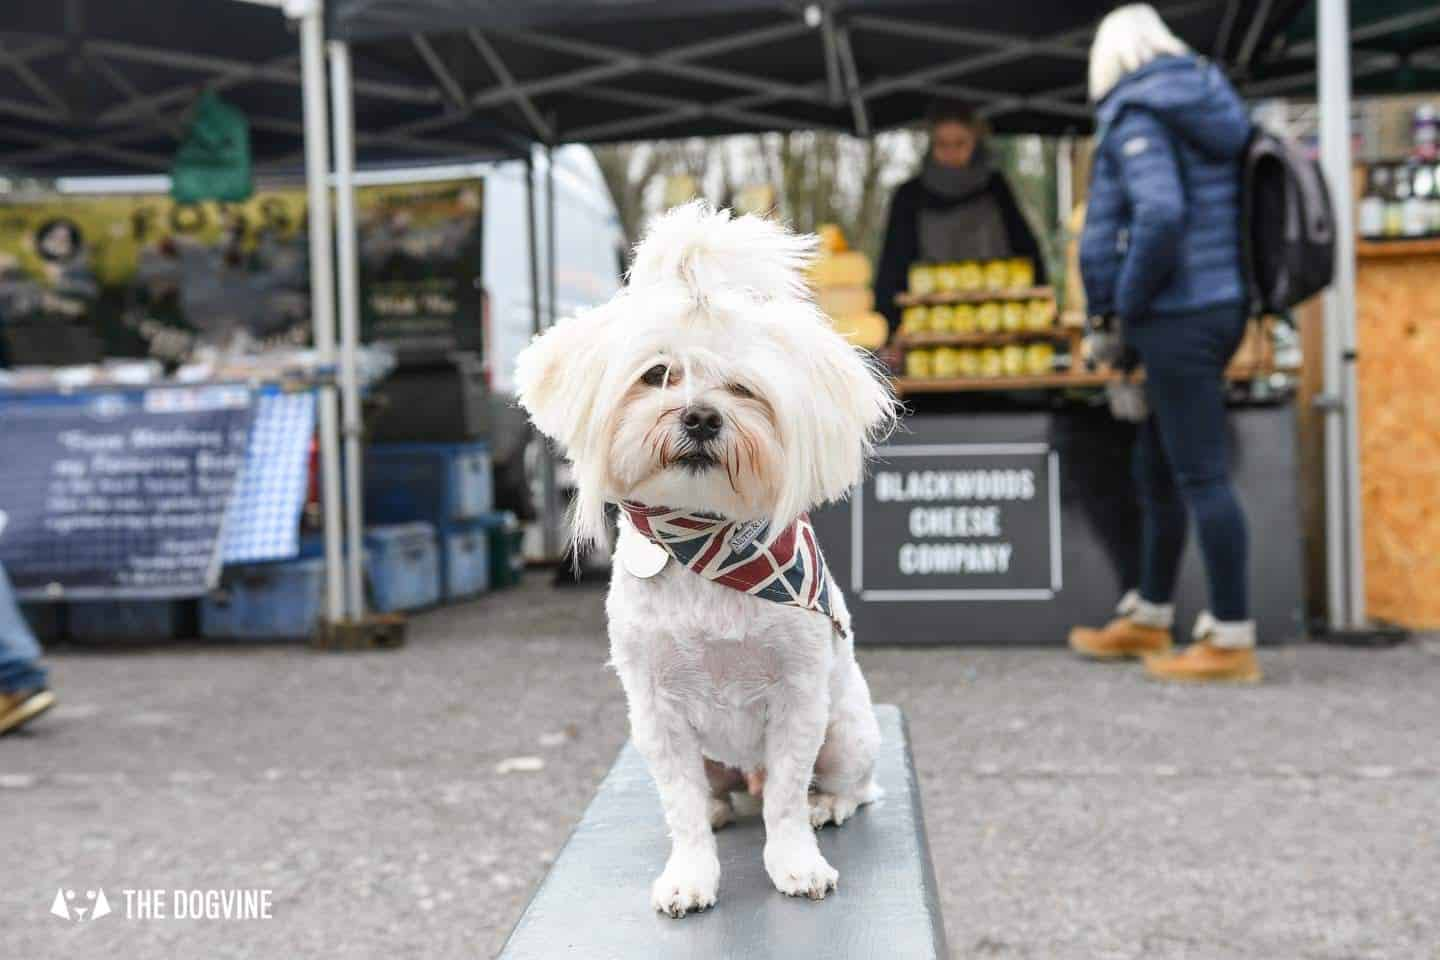 The Best of Dog-friendly St Johns by Milo the Maltese - Brockley Market 2